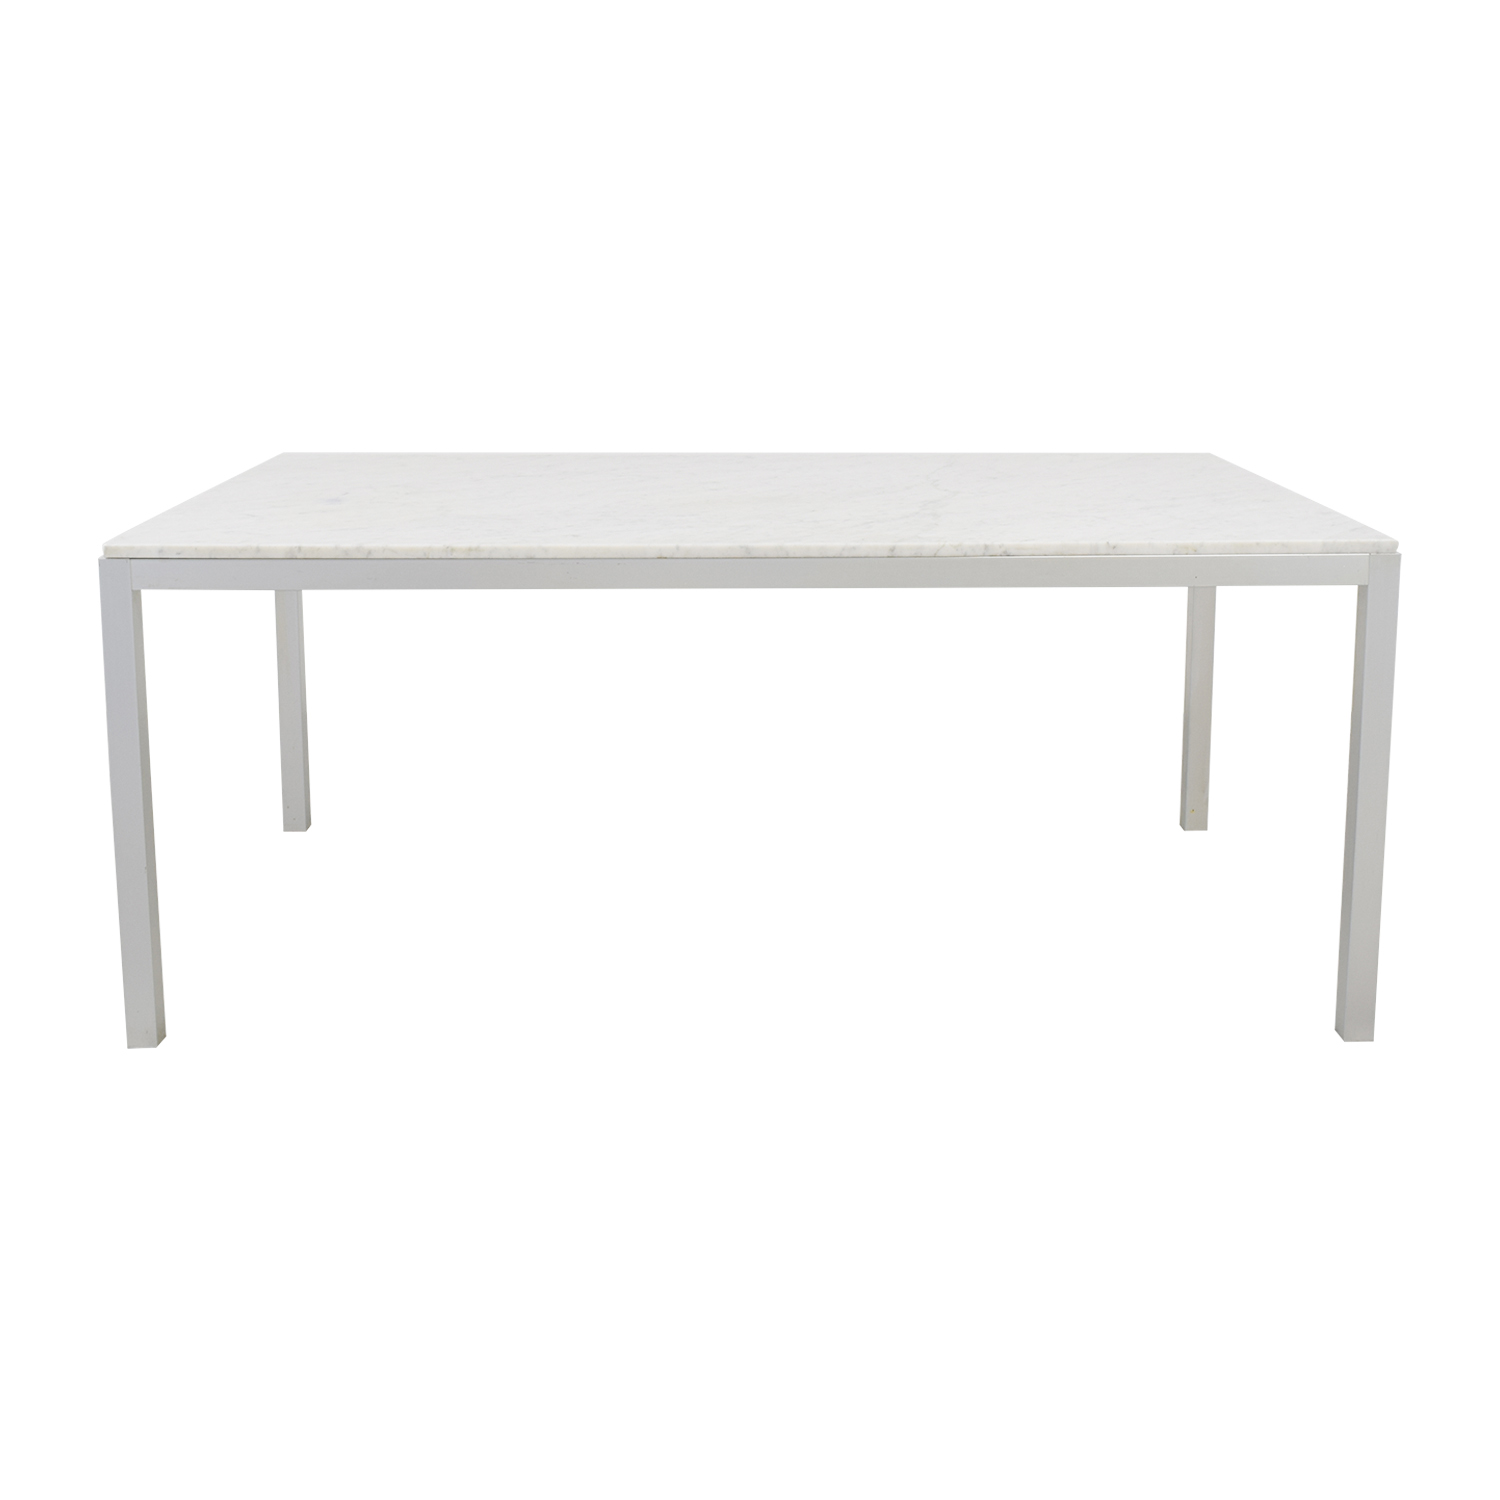 MDF Italia MDF Italia White Marble Dining Table or Desk Tables